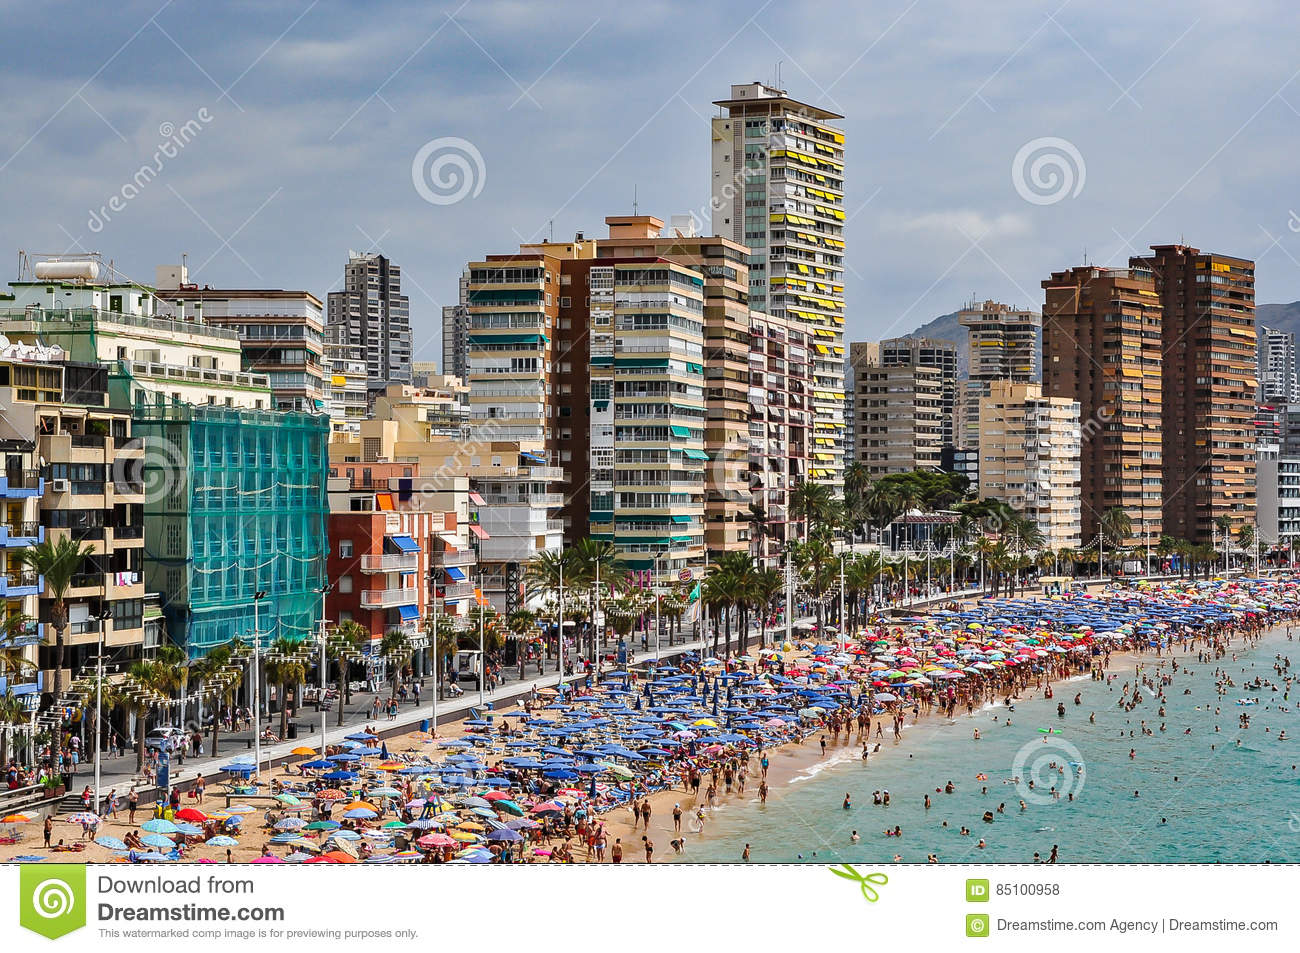 Crowded beach of Benidorm on a cloudy day